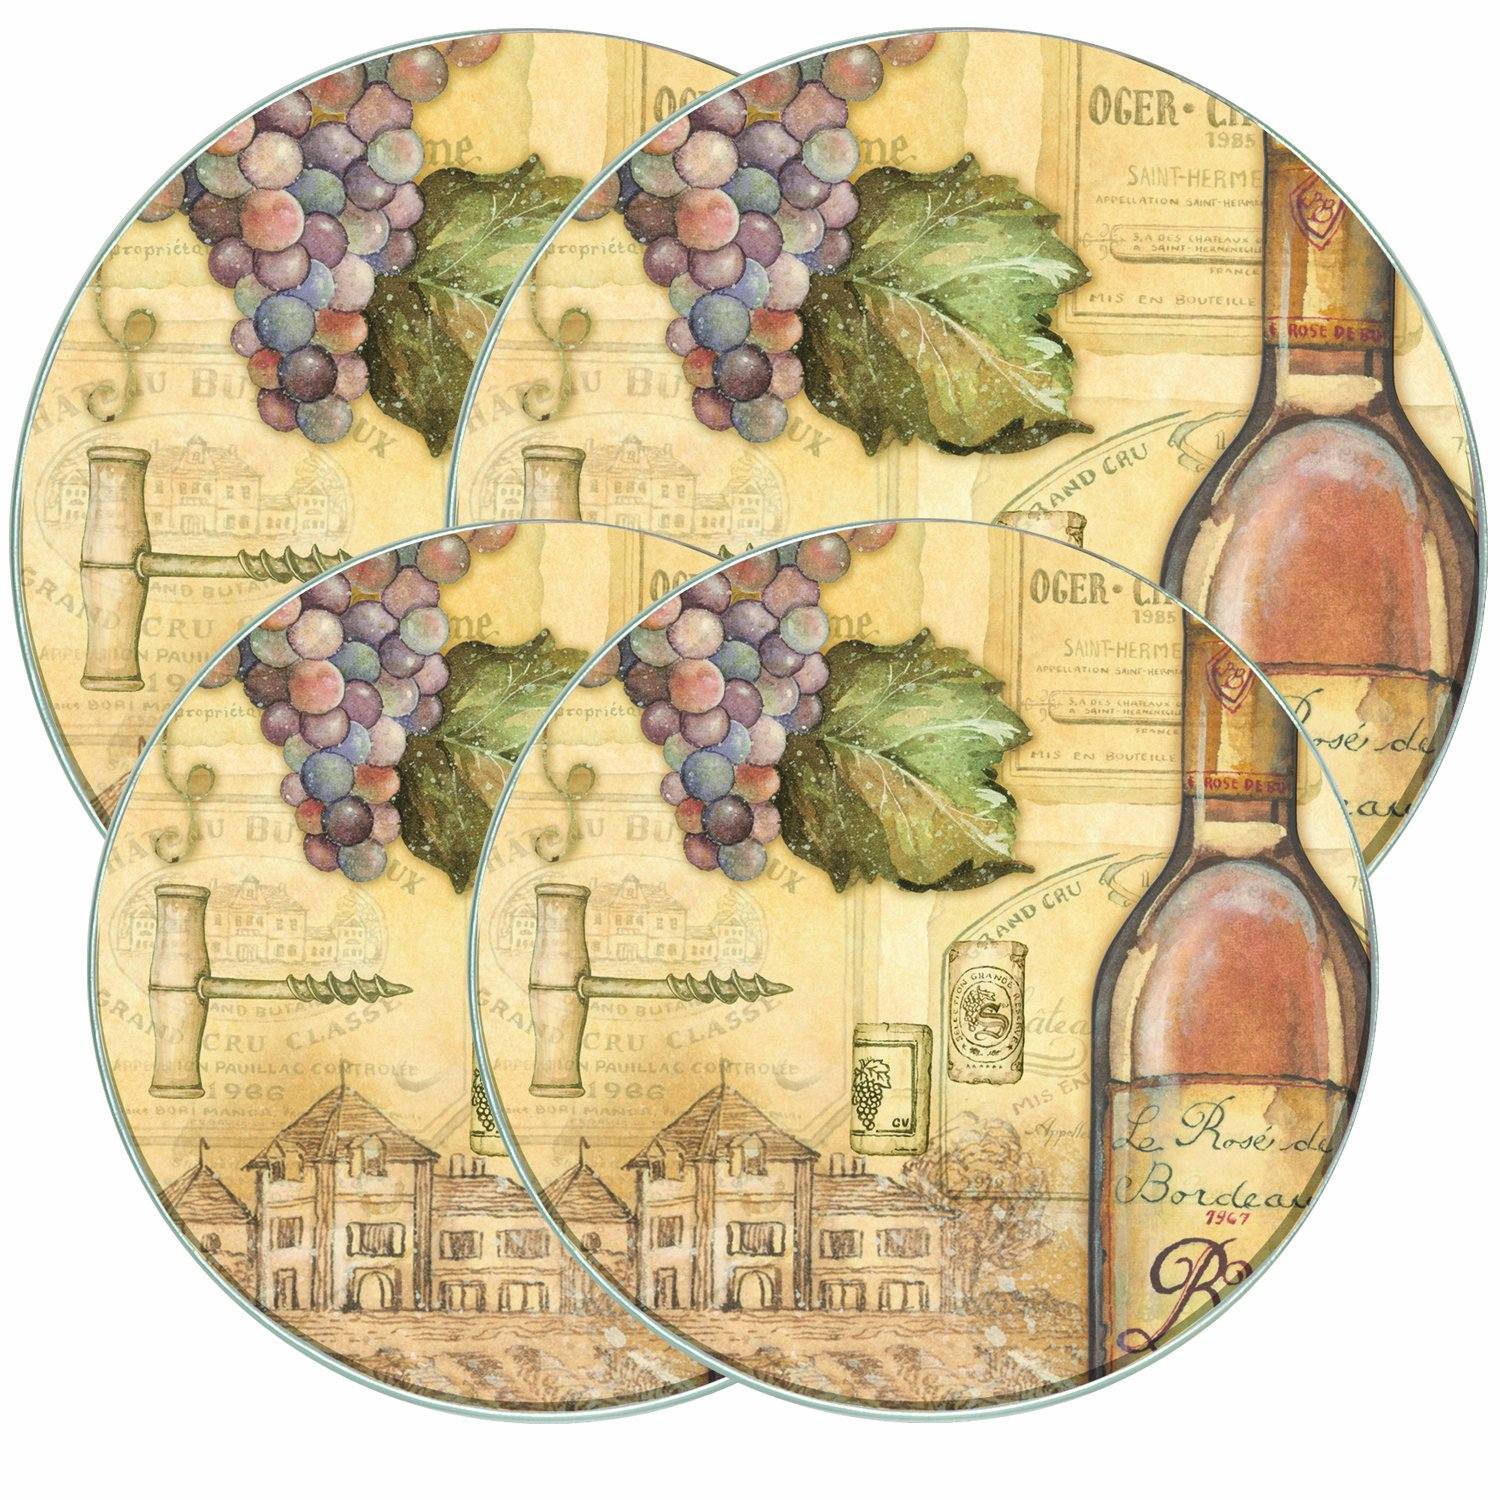 Range Kleen 5062 4 Pack Tuscany Wine Round Burner Covers with 2 8.5 Inch and 2 10.5 Inch